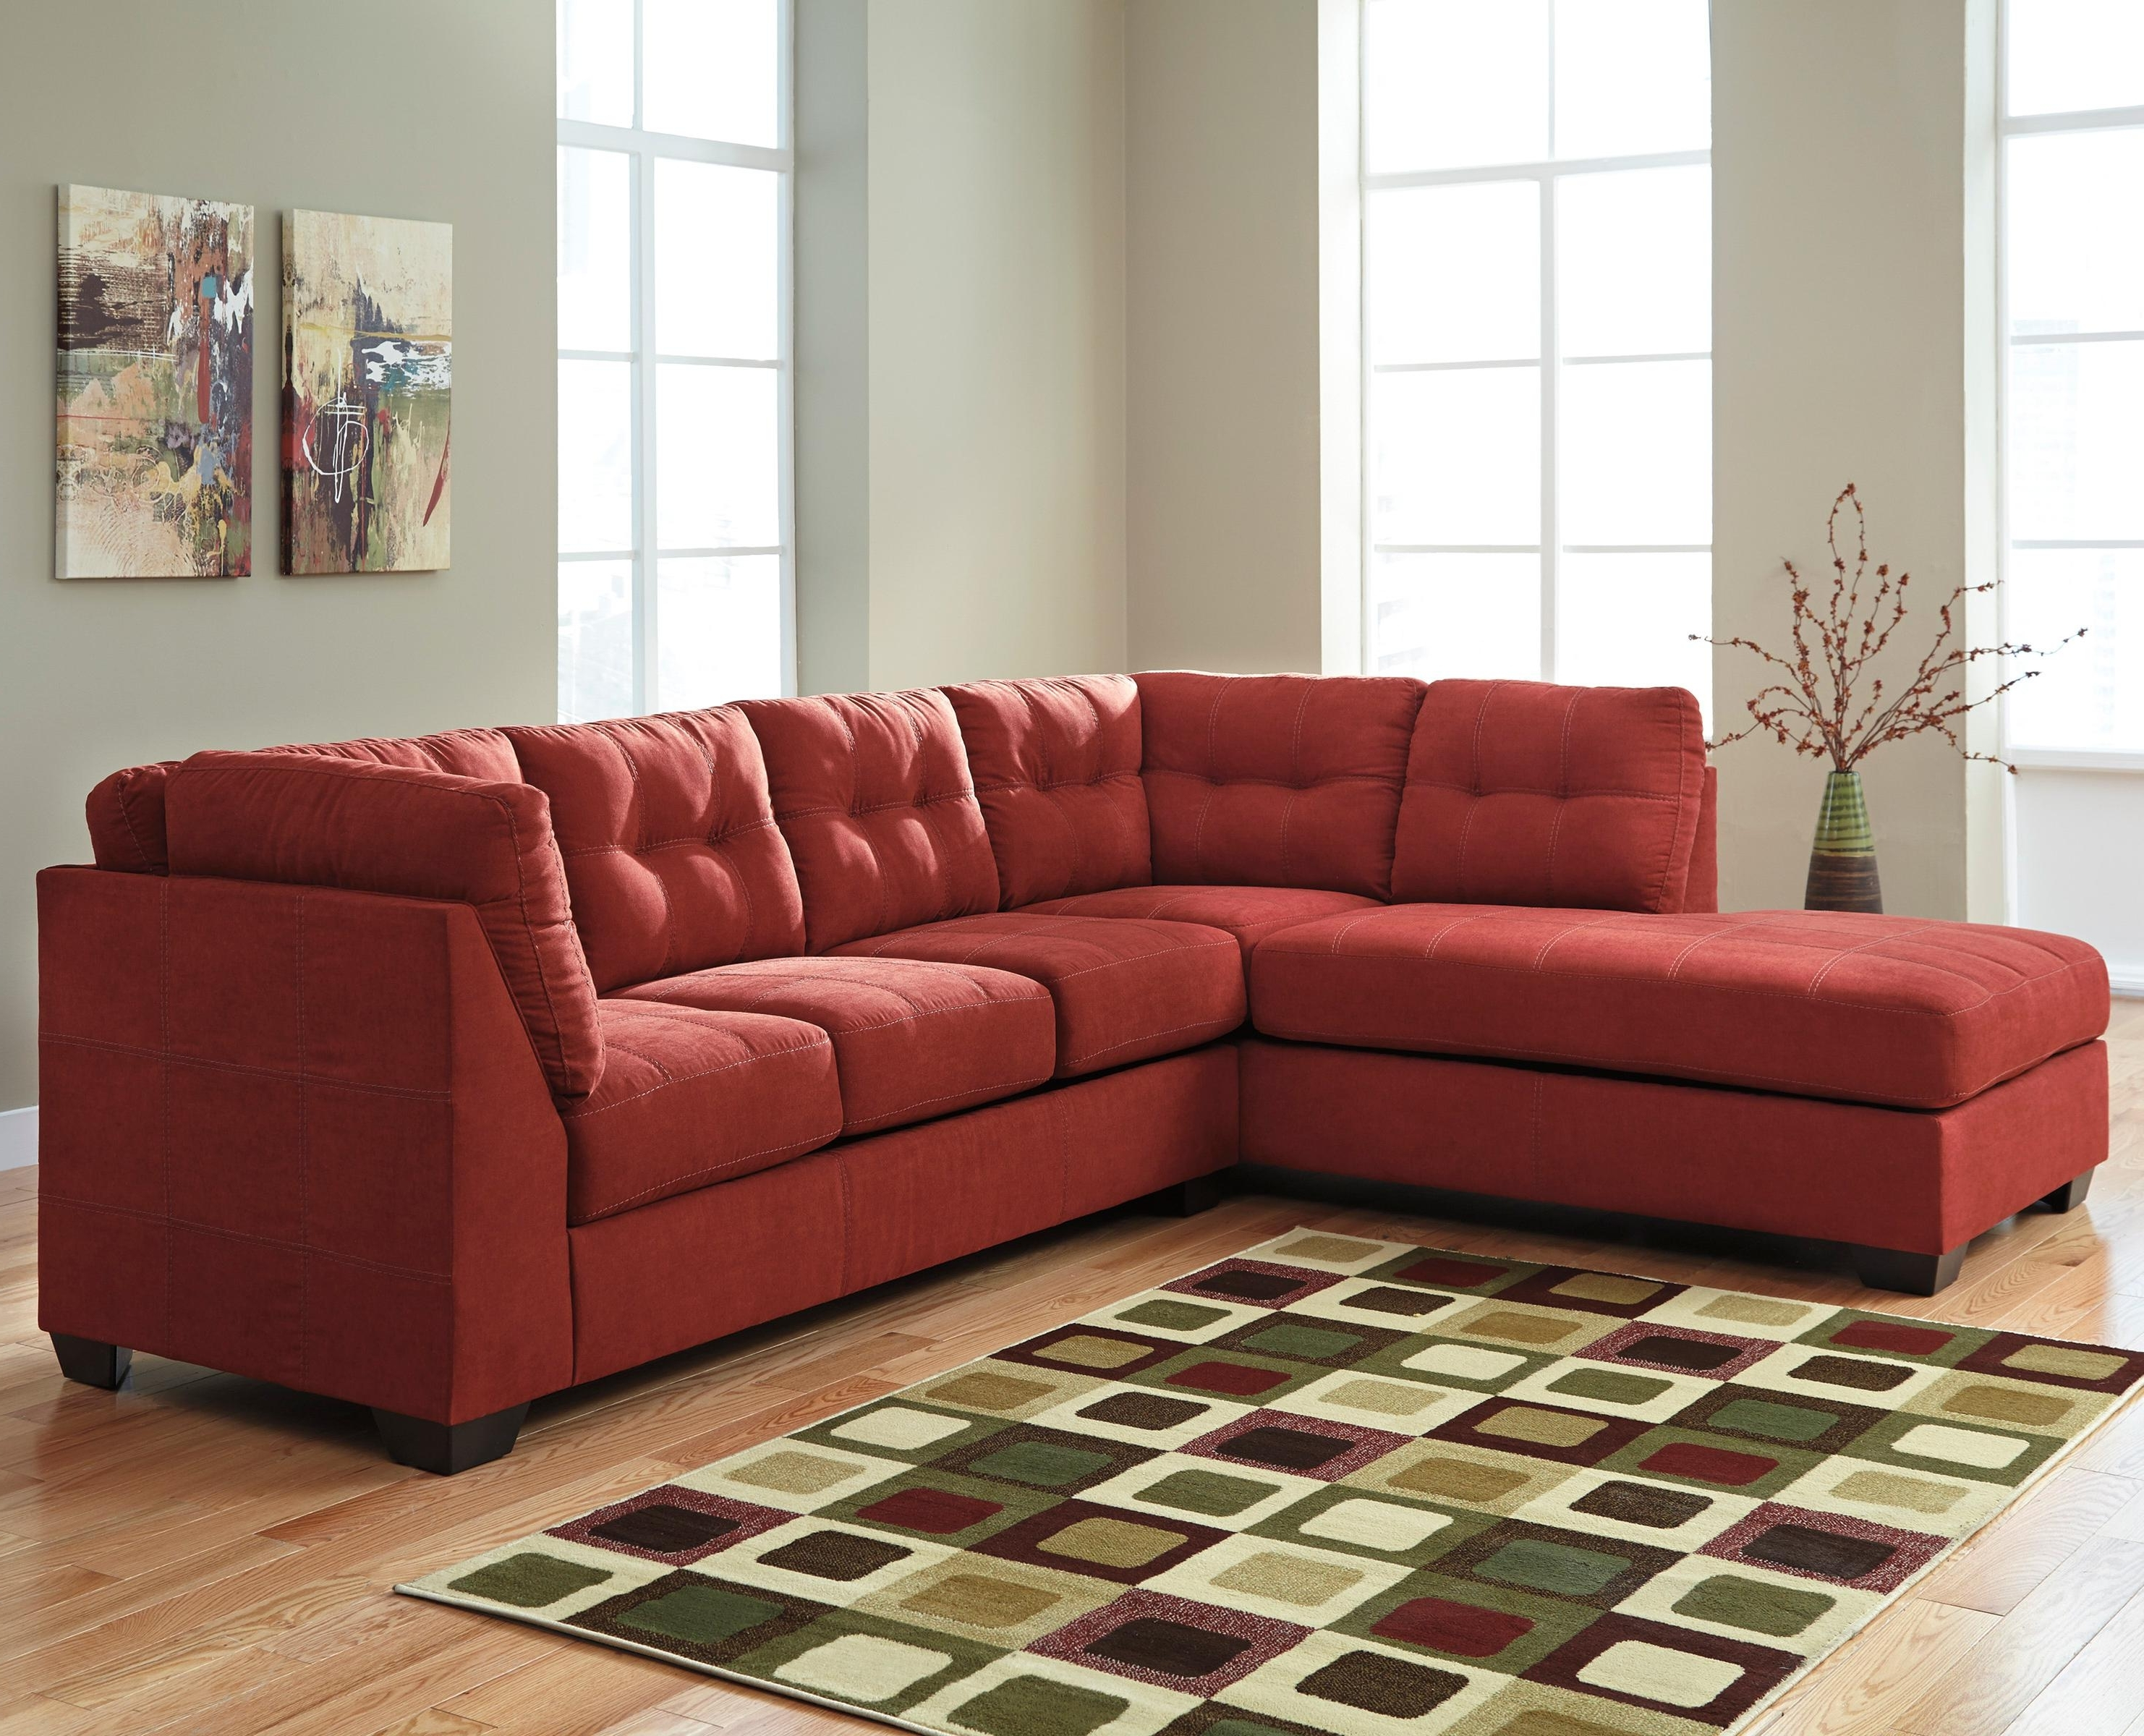 Wolf And Pertaining To Popular Left Chaise Sectionals (View 12 of 15)